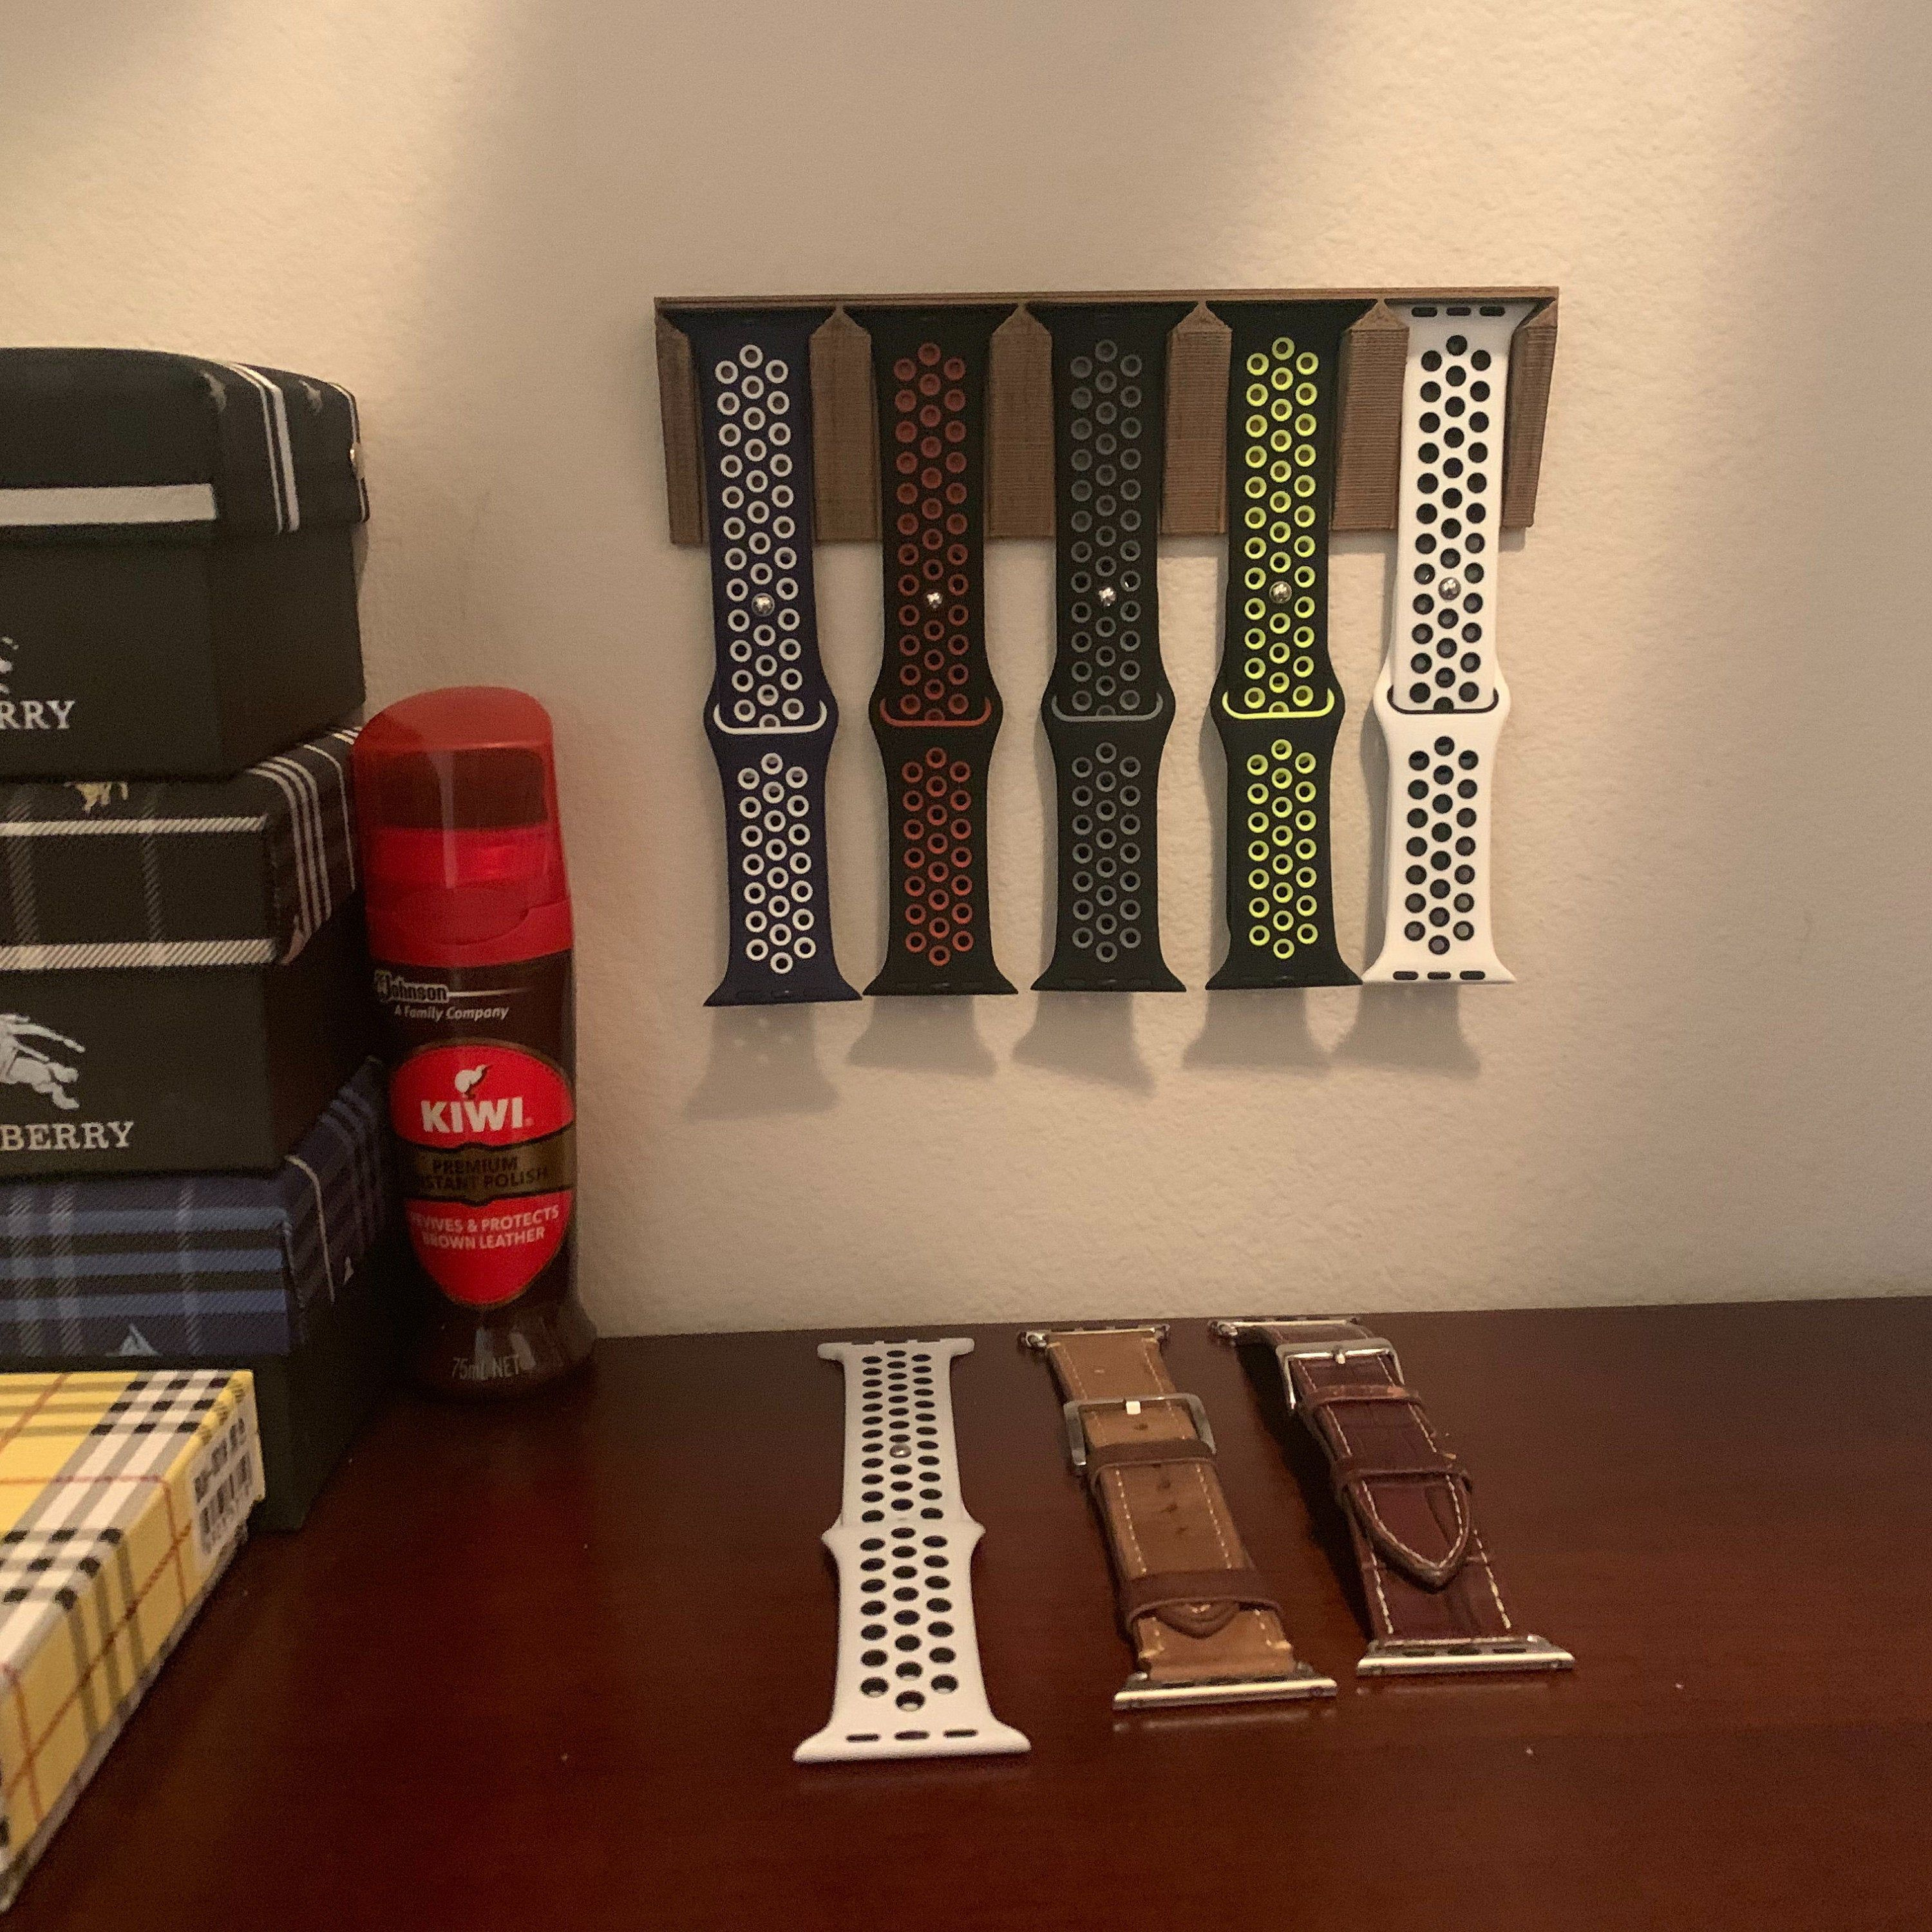 Apple watch band display holder 3d print plastic or wood